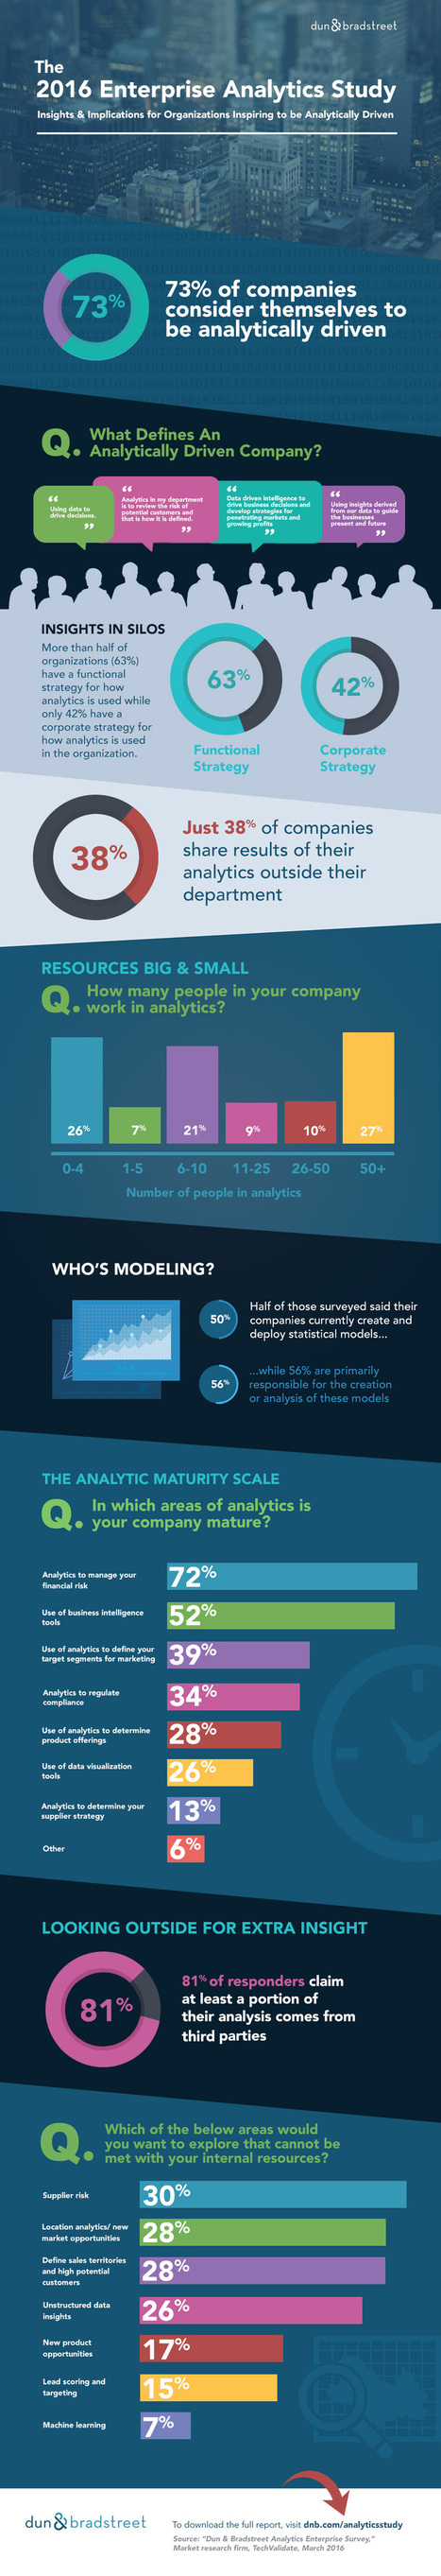 INFOGRAPHIC: The 2016 State of Enterprise Analytics - Predictive Analytics Times - predictive analytics & big data news | Designing  service | Scoop.it